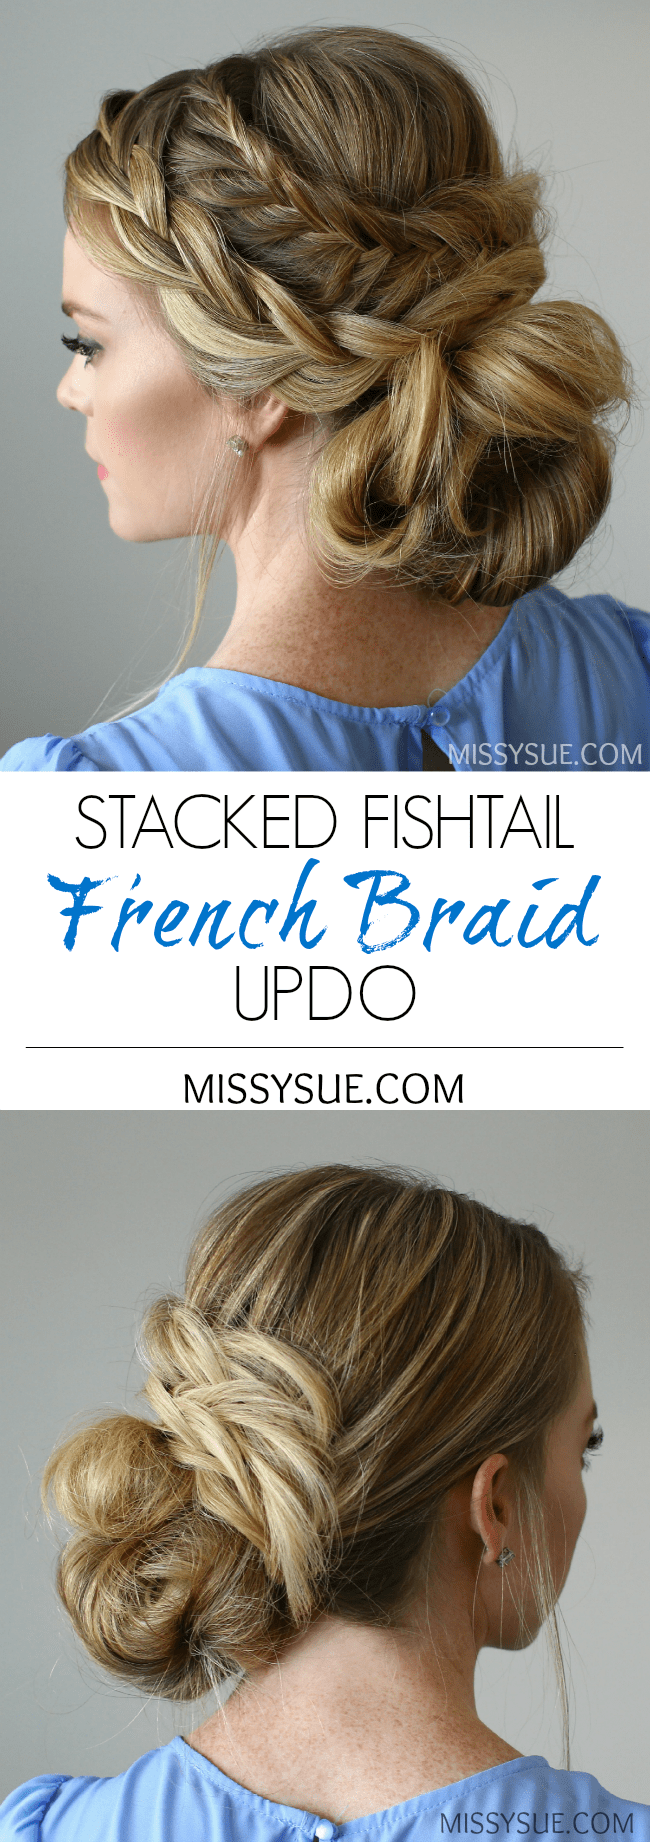 Stacked Fishtail French Braid Updo